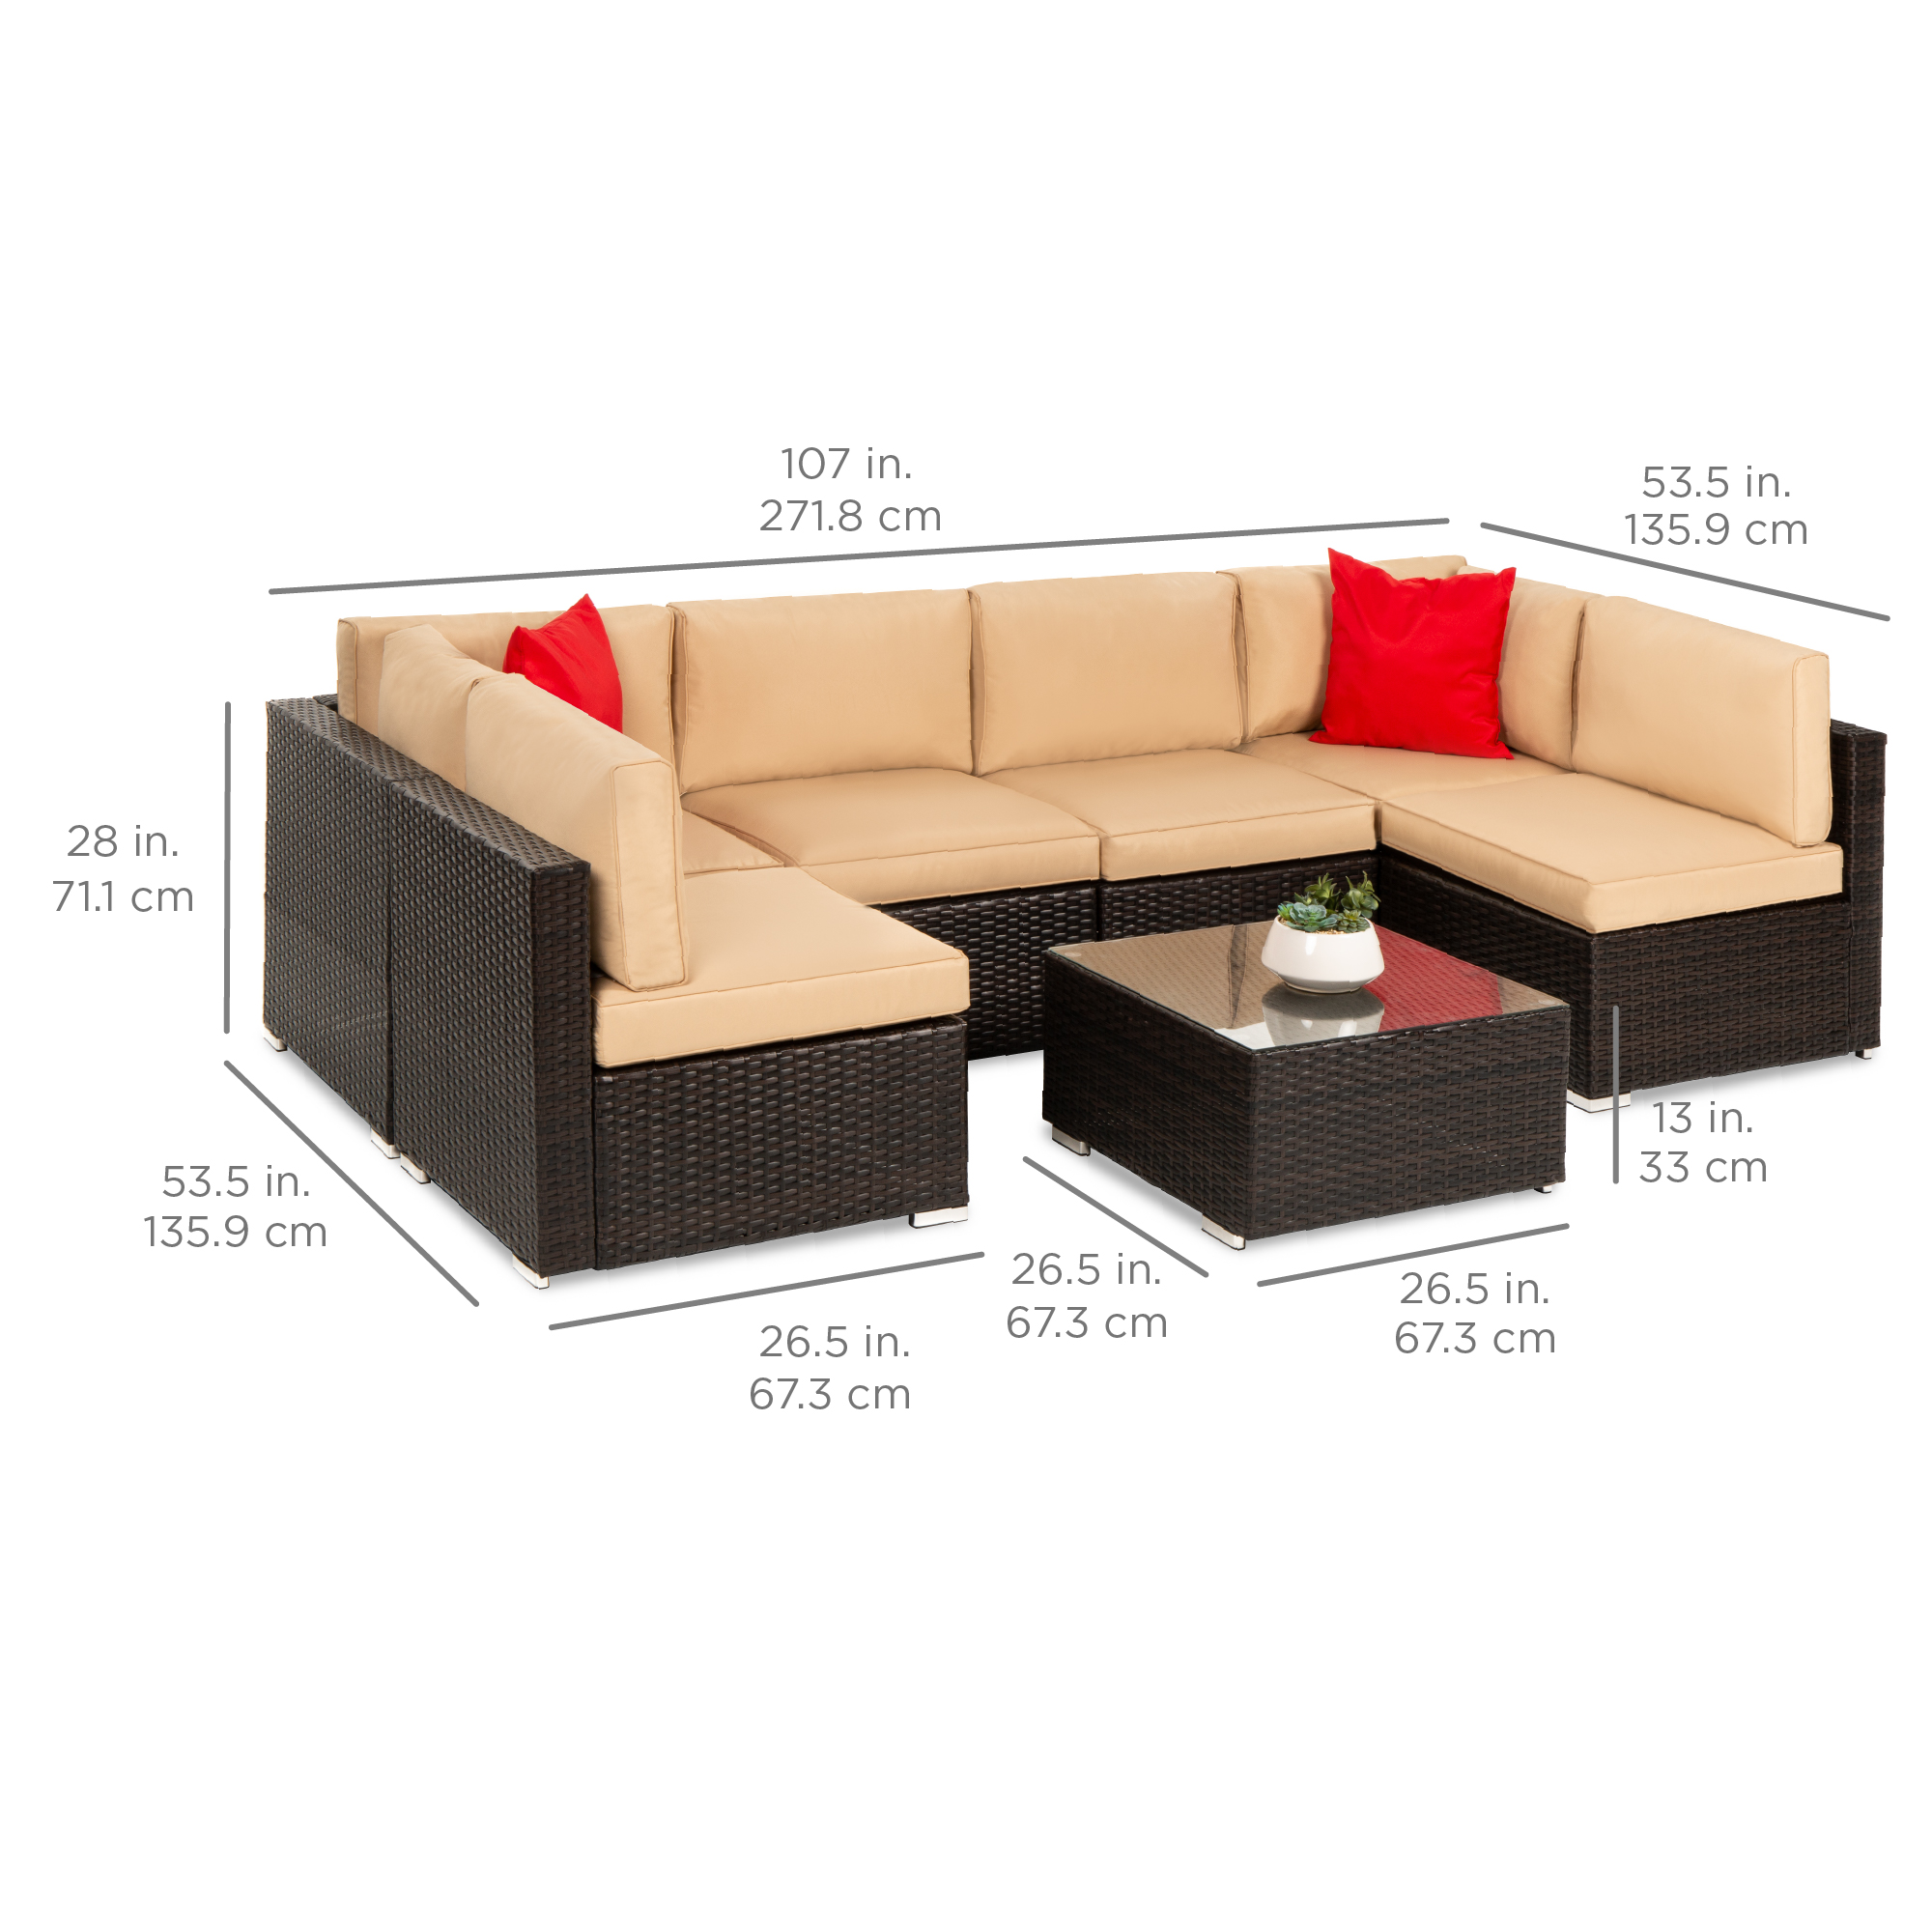 7 Piece Modular Outdoor Patio Furniture